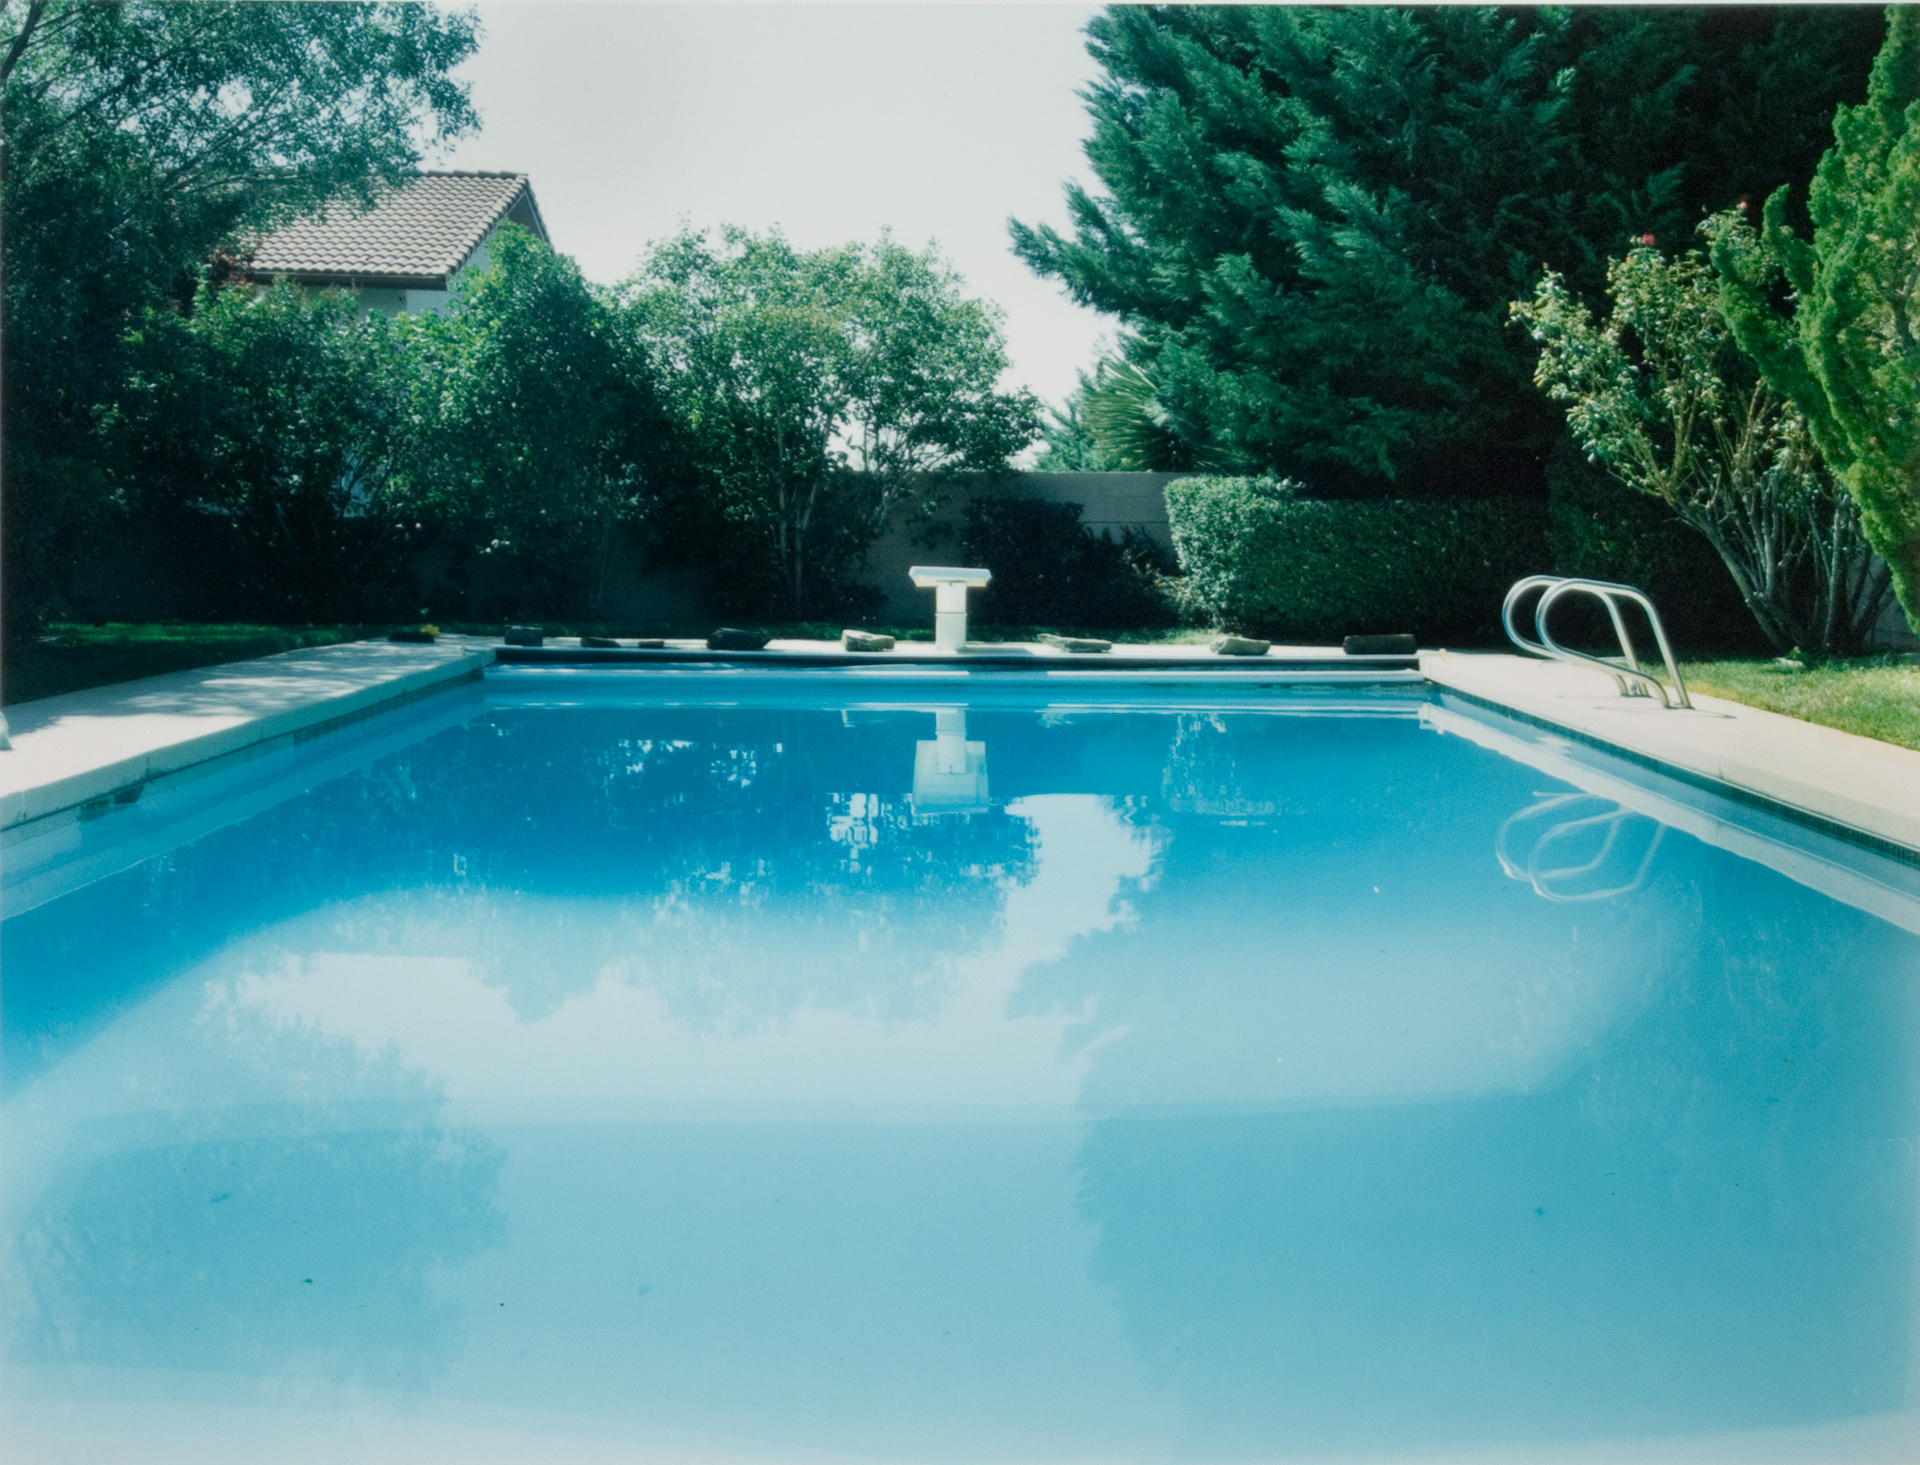 Pool 2 , Chromogenic Print, 8 x10 on 16 x 20 paper, 2001